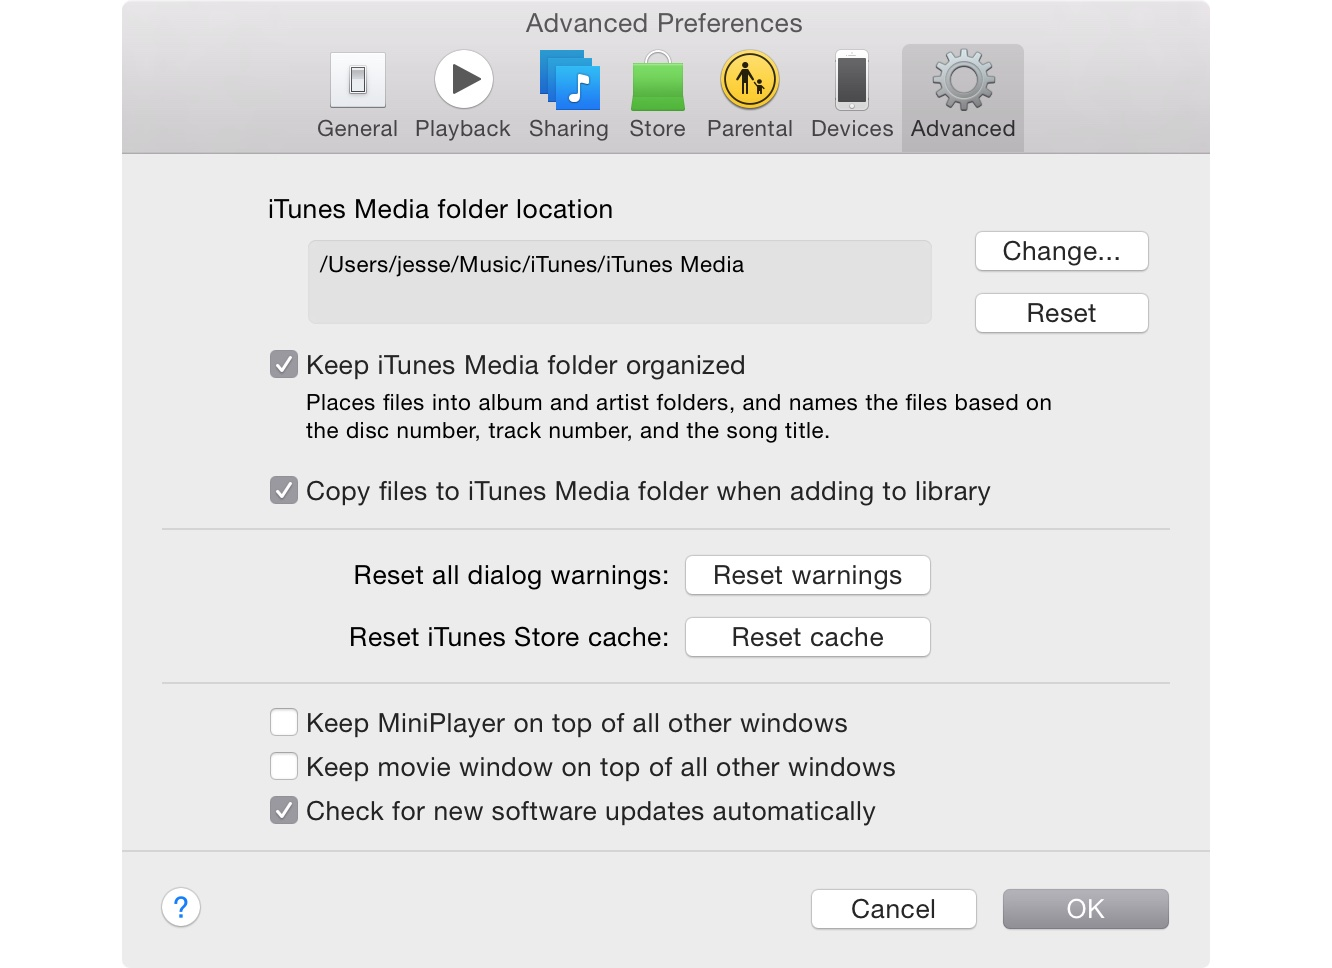 Reorganizing files in the iTunes Media Folder 1